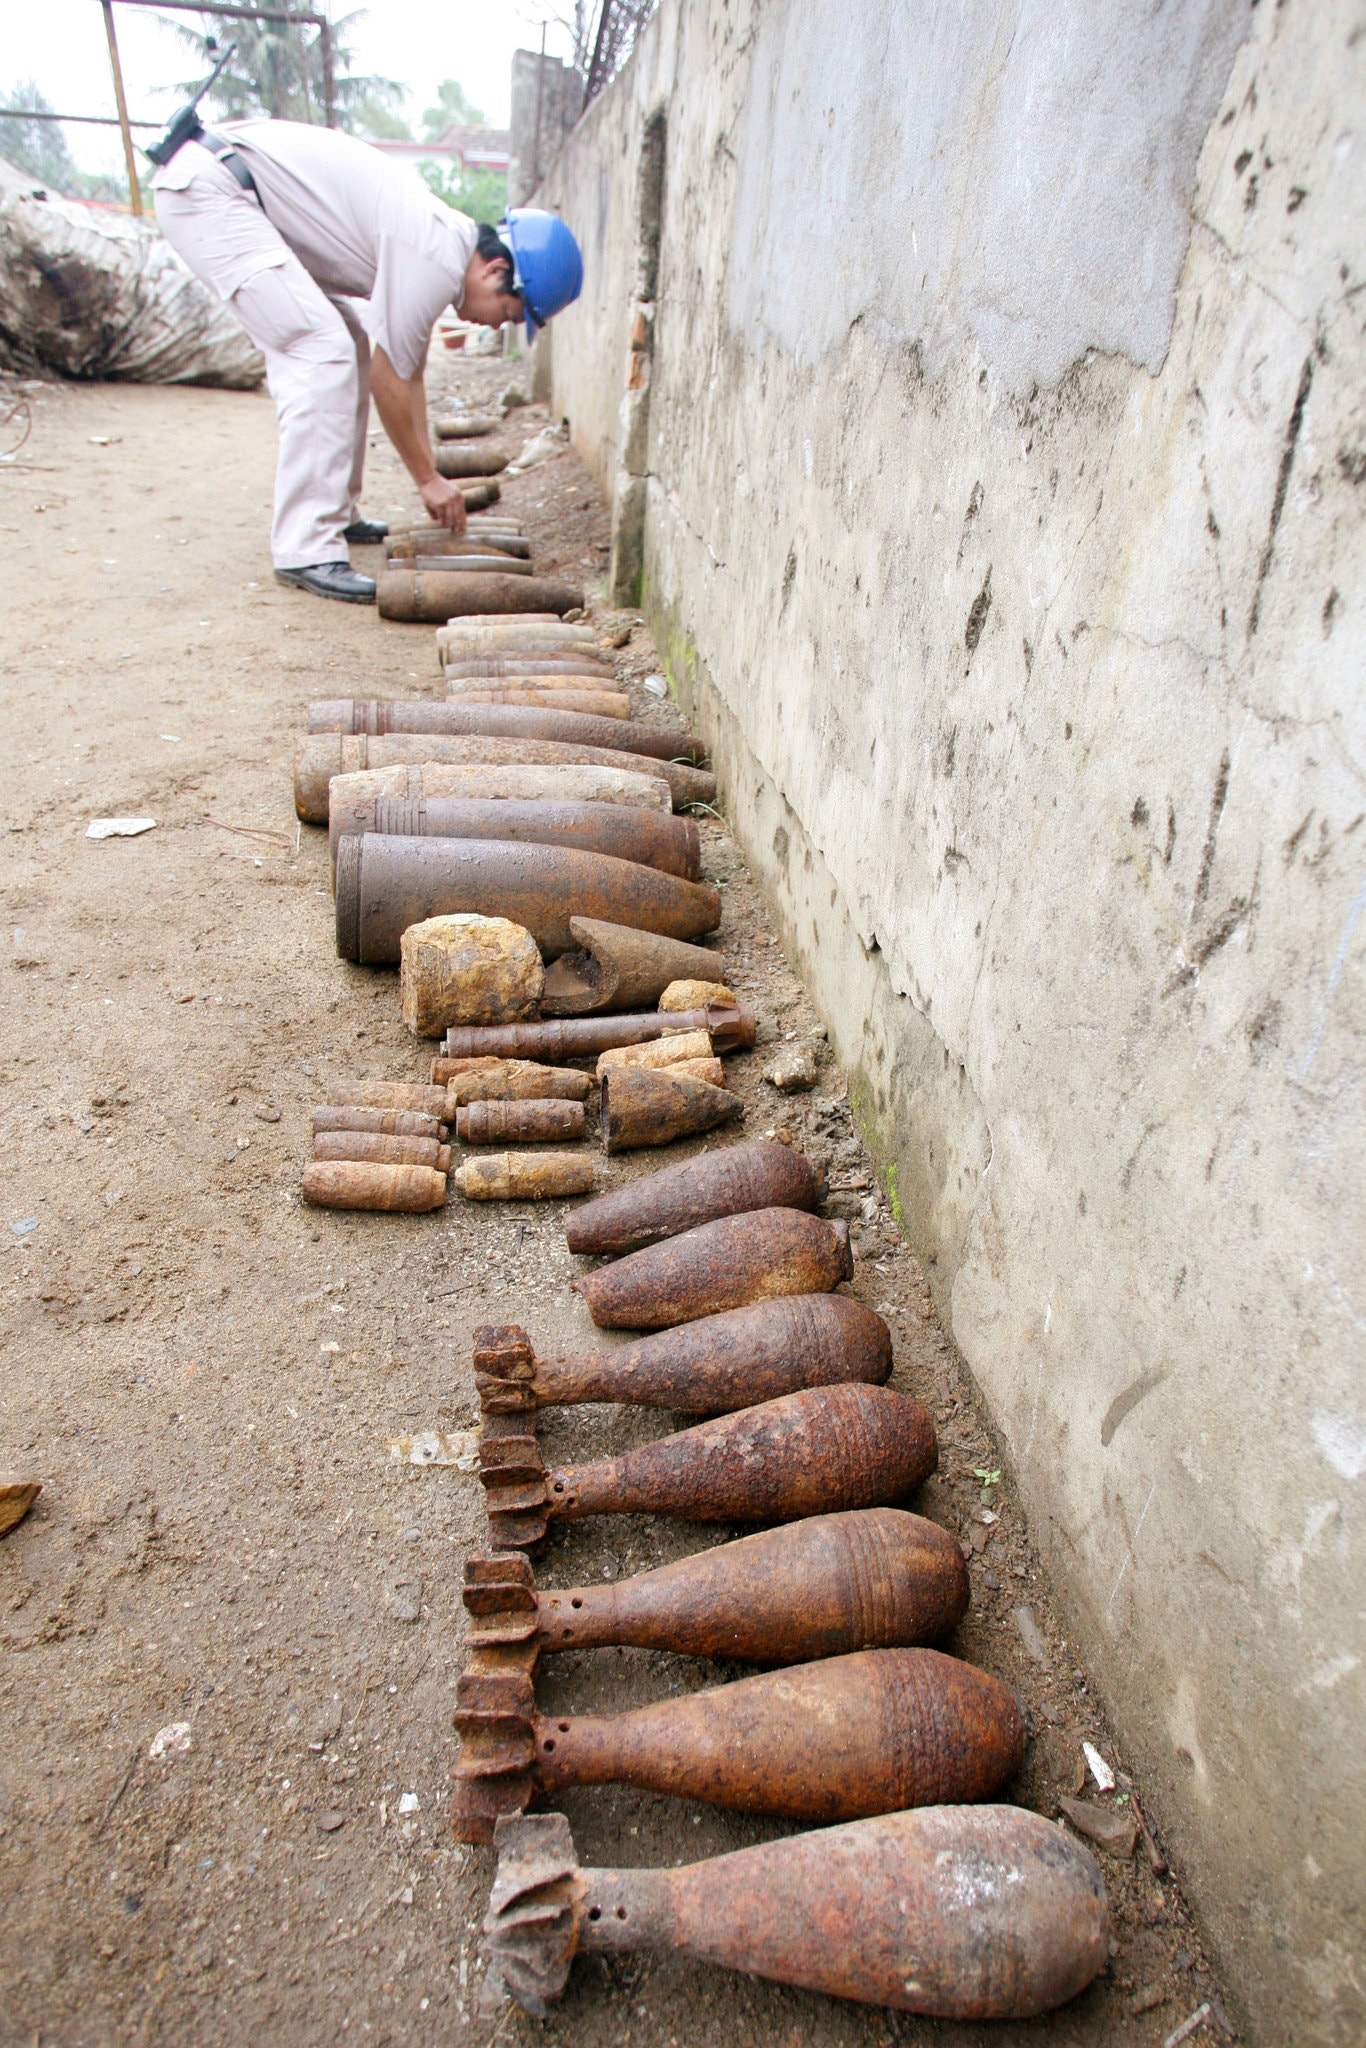 Unexploded-ordnance-Quang-Binh-Province-central-Vietnam-2007-by-Nguyen-Huy-Kham-Reuters-1, What lessons have we learned from the war in Vietnam?, World News & Views